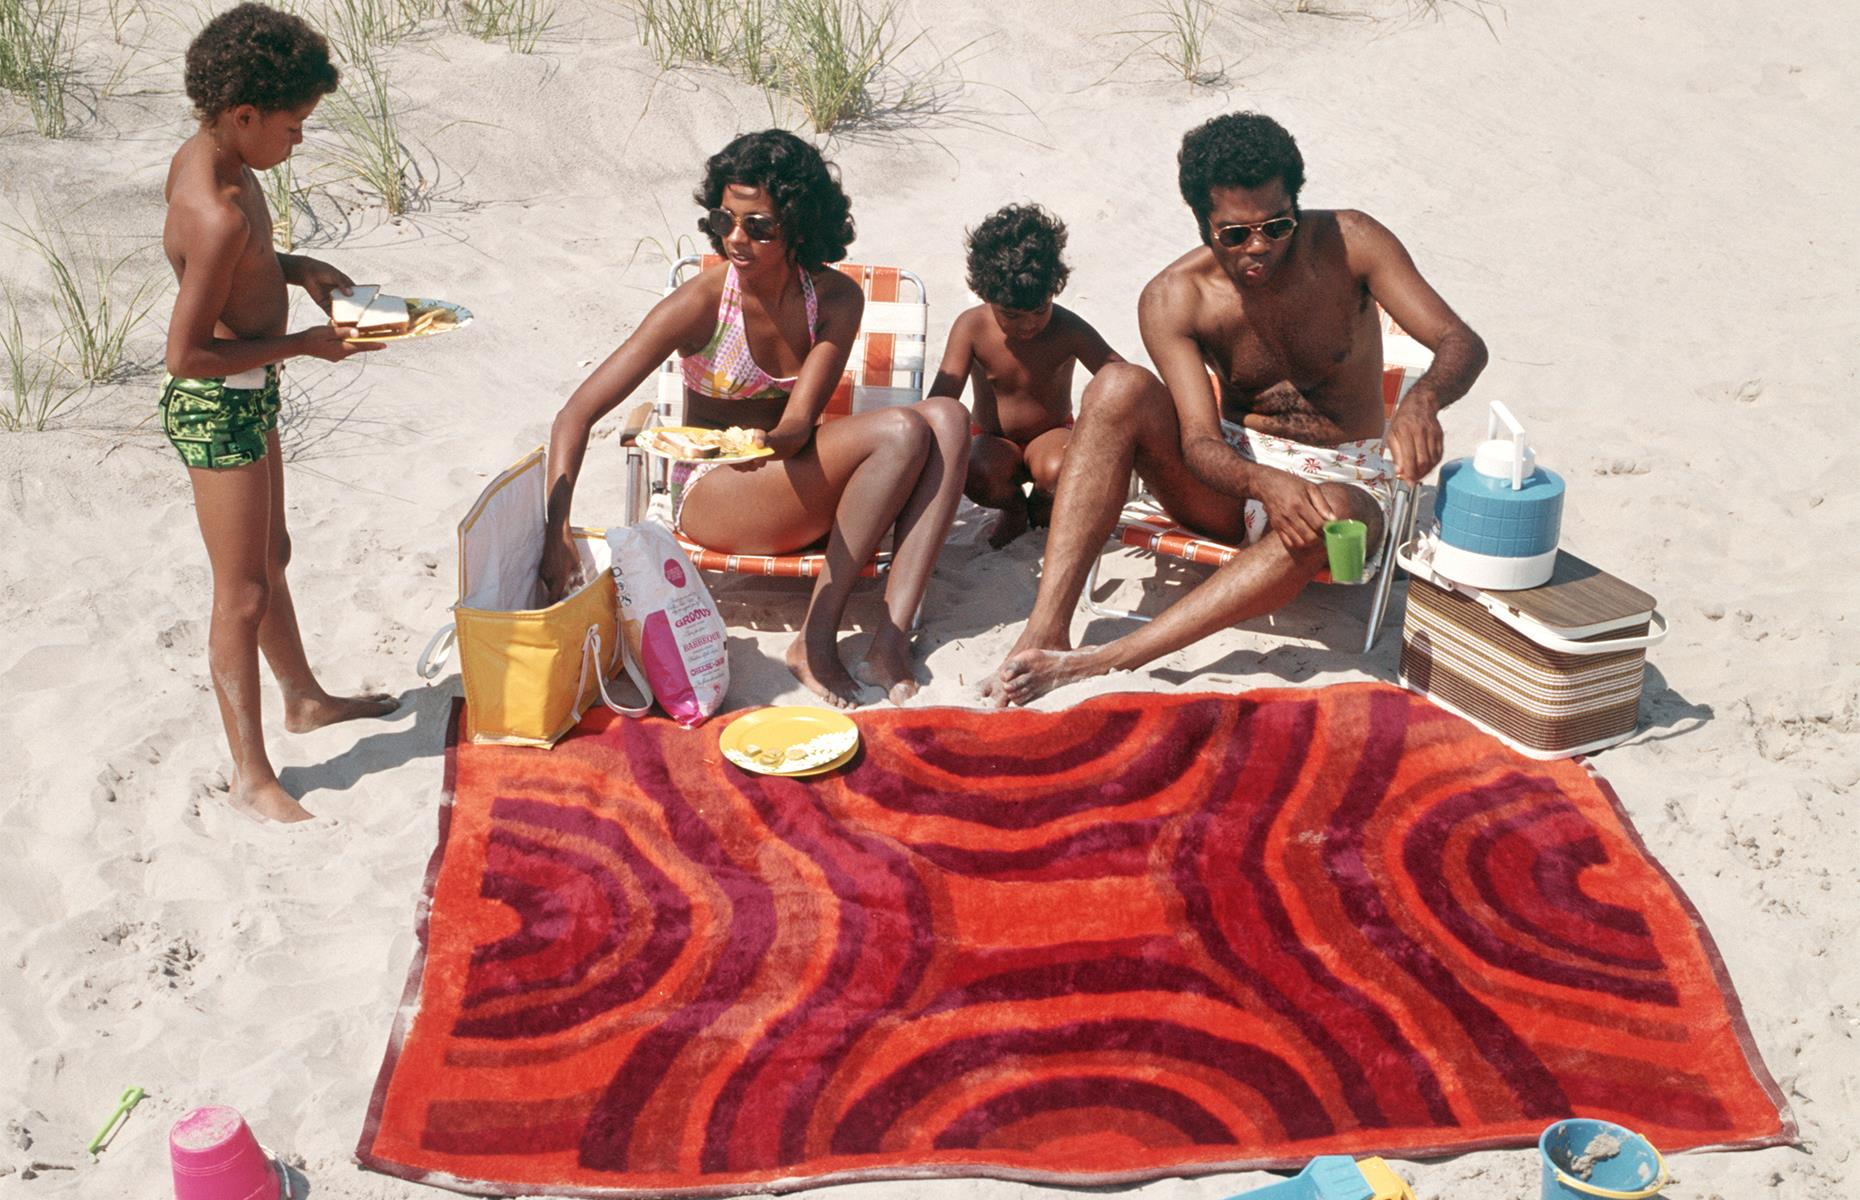 Slide 25 of 38: But despite the theme parks, the cruise ships and the call of the Continent, many Americans still vacationed closer to home. Here a young family picnic on a quiet beach on a sun-drenched afternoon in New Jersey.